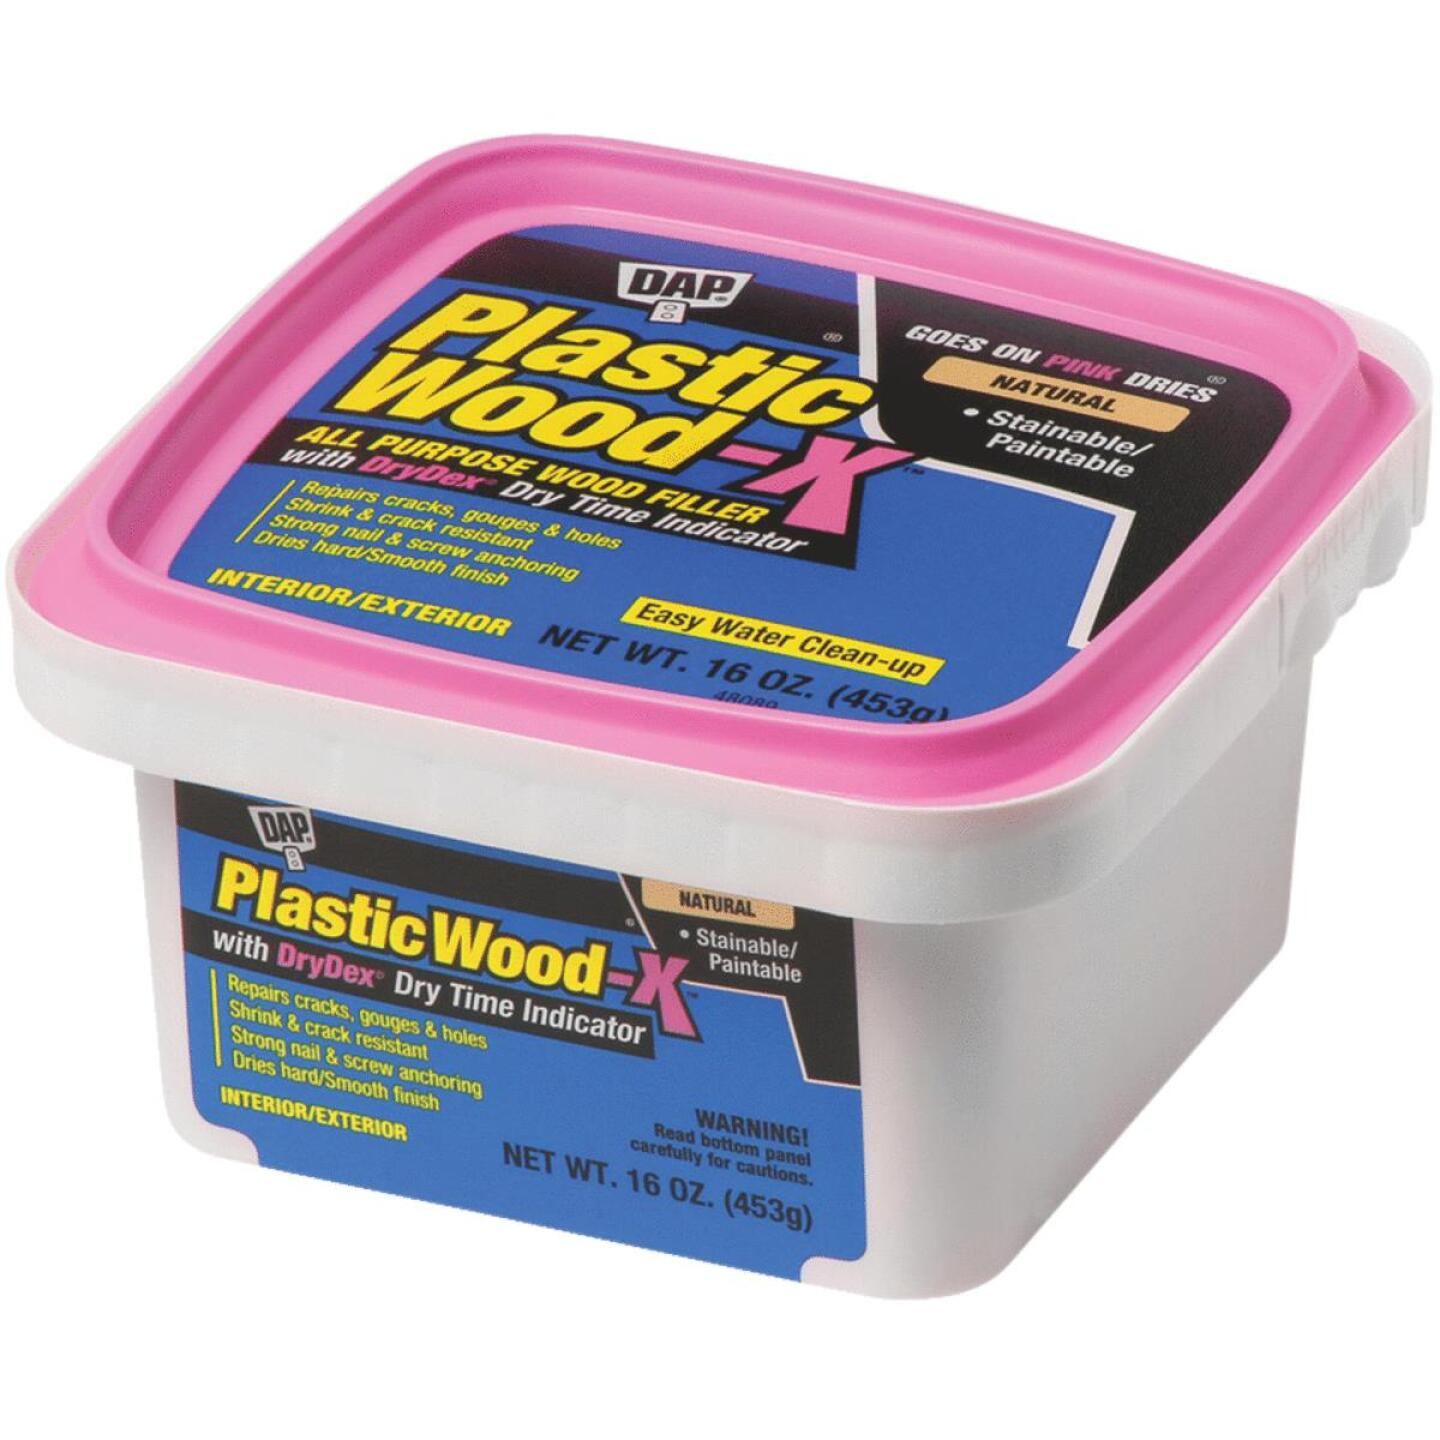 Dap Plastic Wood-X 16 Oz. All Purpose Wood Filler with DryDex Dry Time Indicator Image 1